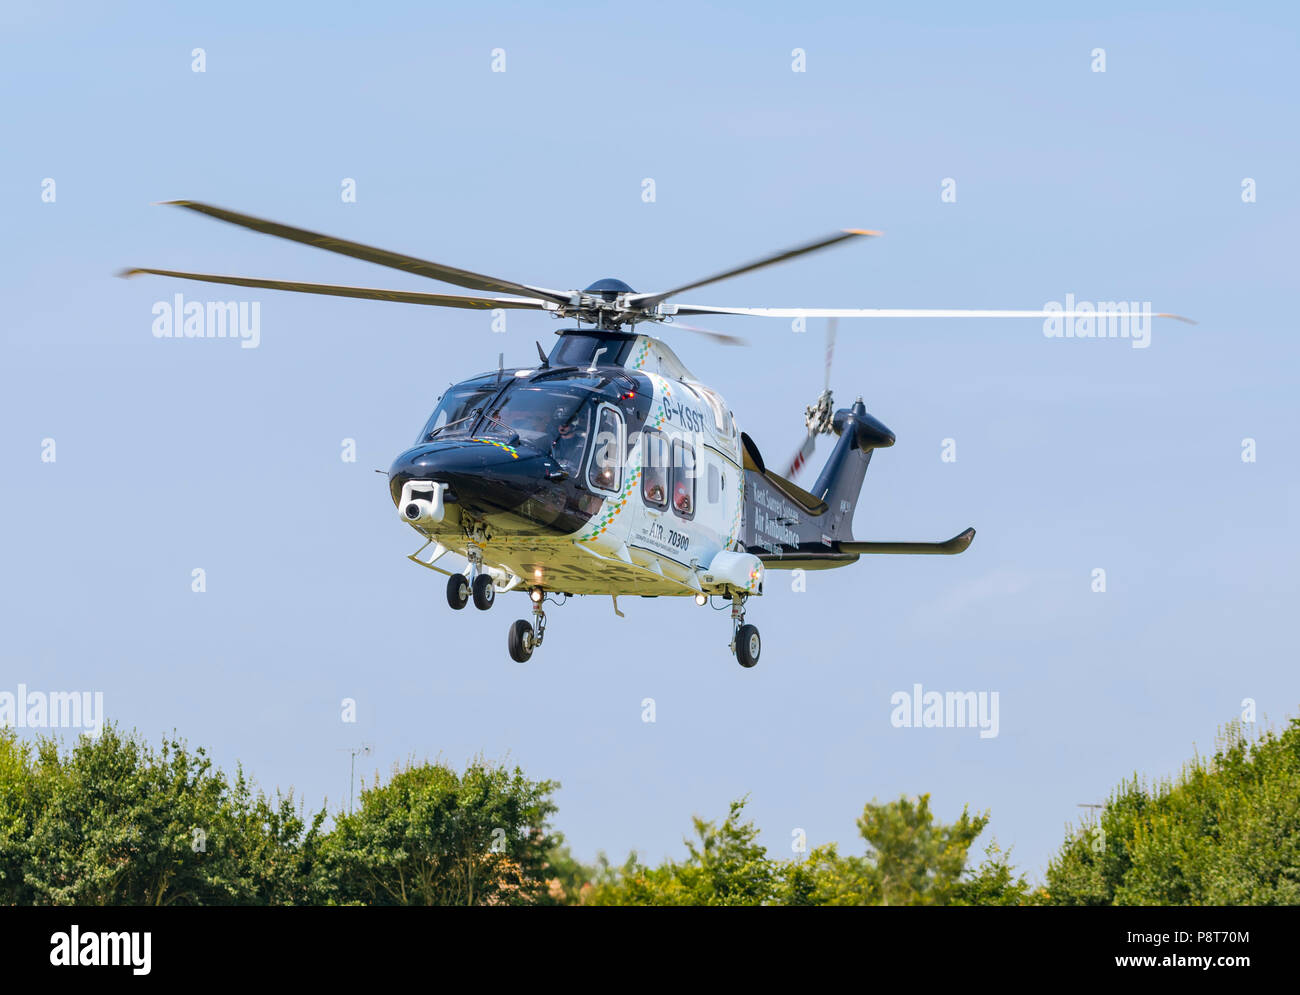 Kent, Surrey, Sussex air ambulance helicopter (G-KSST) taking off after attending accident in England, UK. Aircraft is AgustaWestland AW169. Medical. - Stock Image